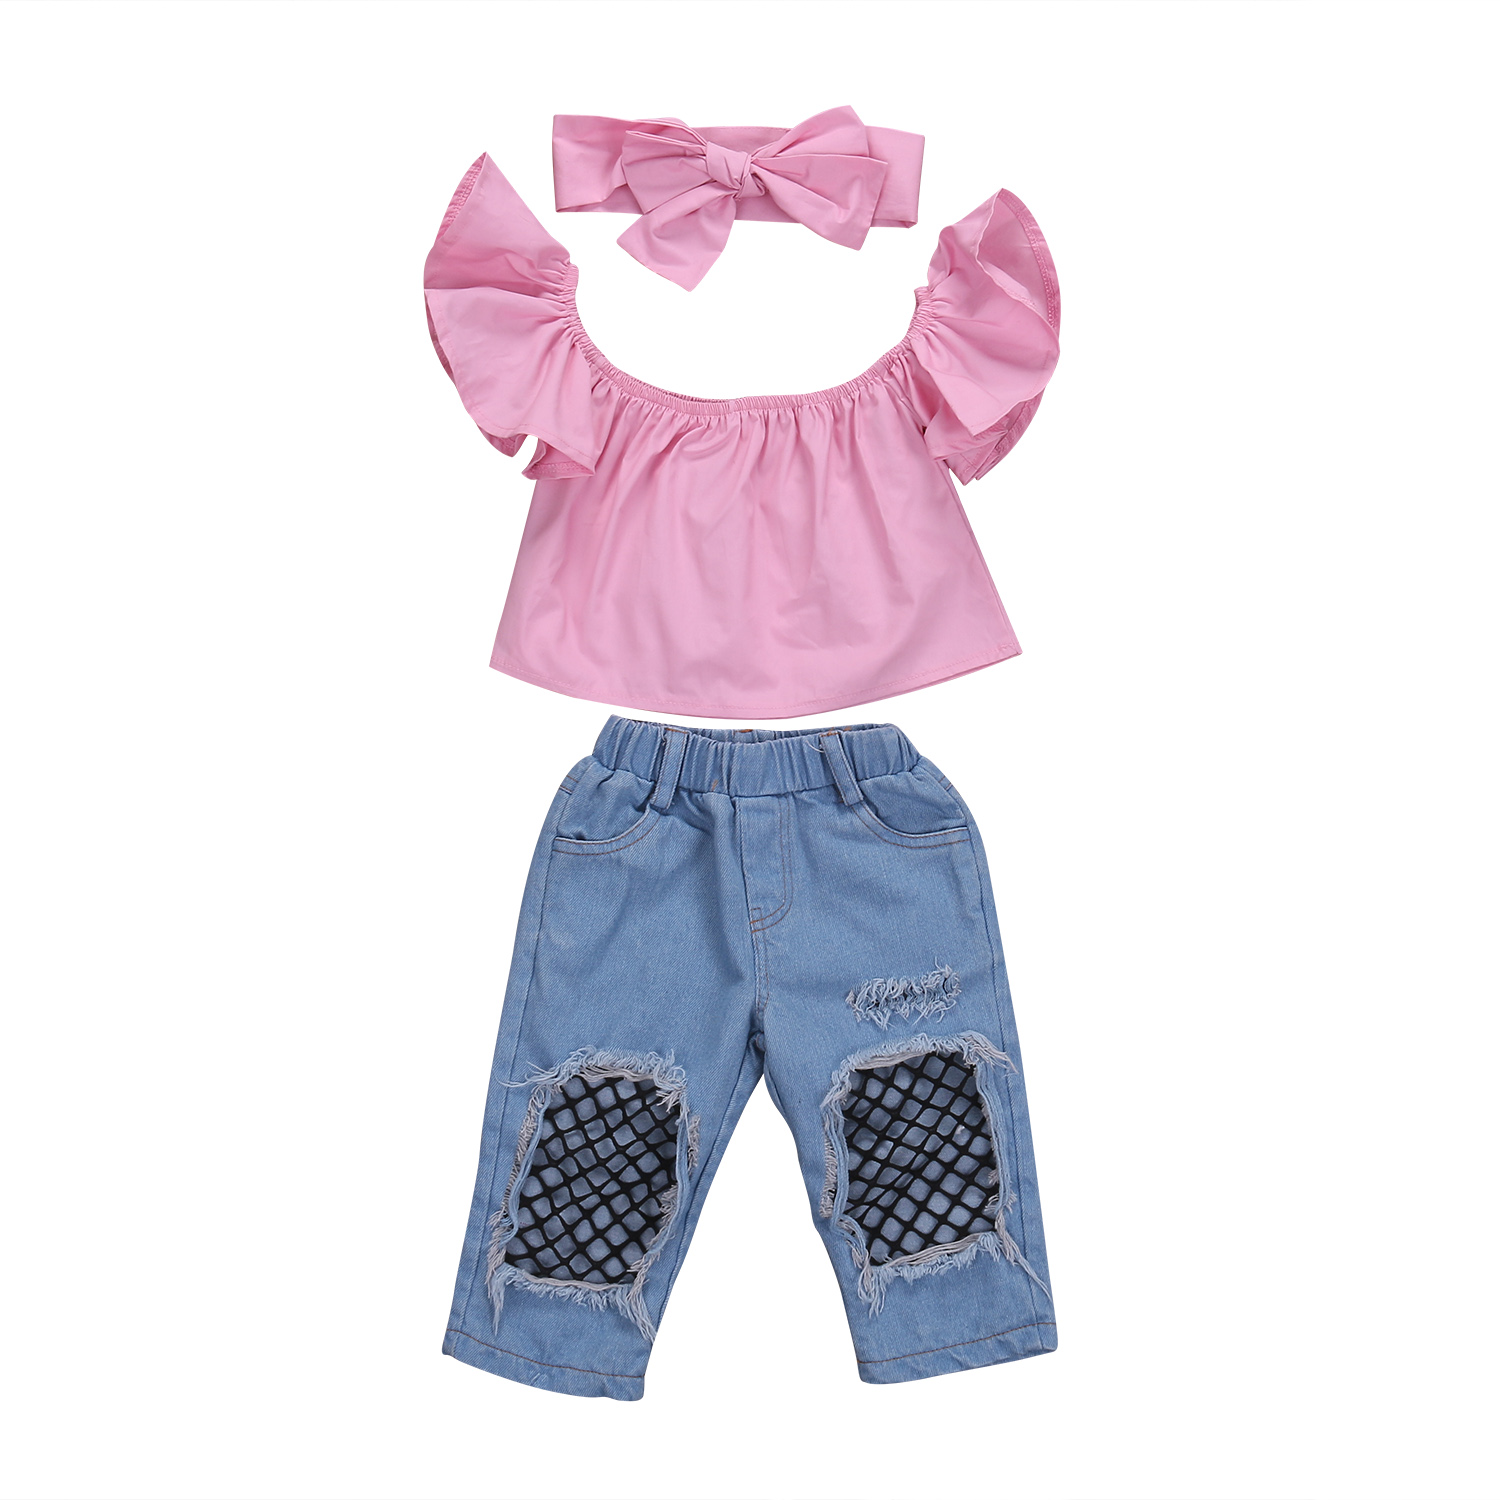 3Pcs/Set Toddler Kids Girls Off Shoulder Summer Outfits T-shirt Tops Denim Pants Jeans Clothing Set toddler baby kids girls clothes sets summer lace tops t shirt short sleeve denim jeans pants cute outfits clothing set